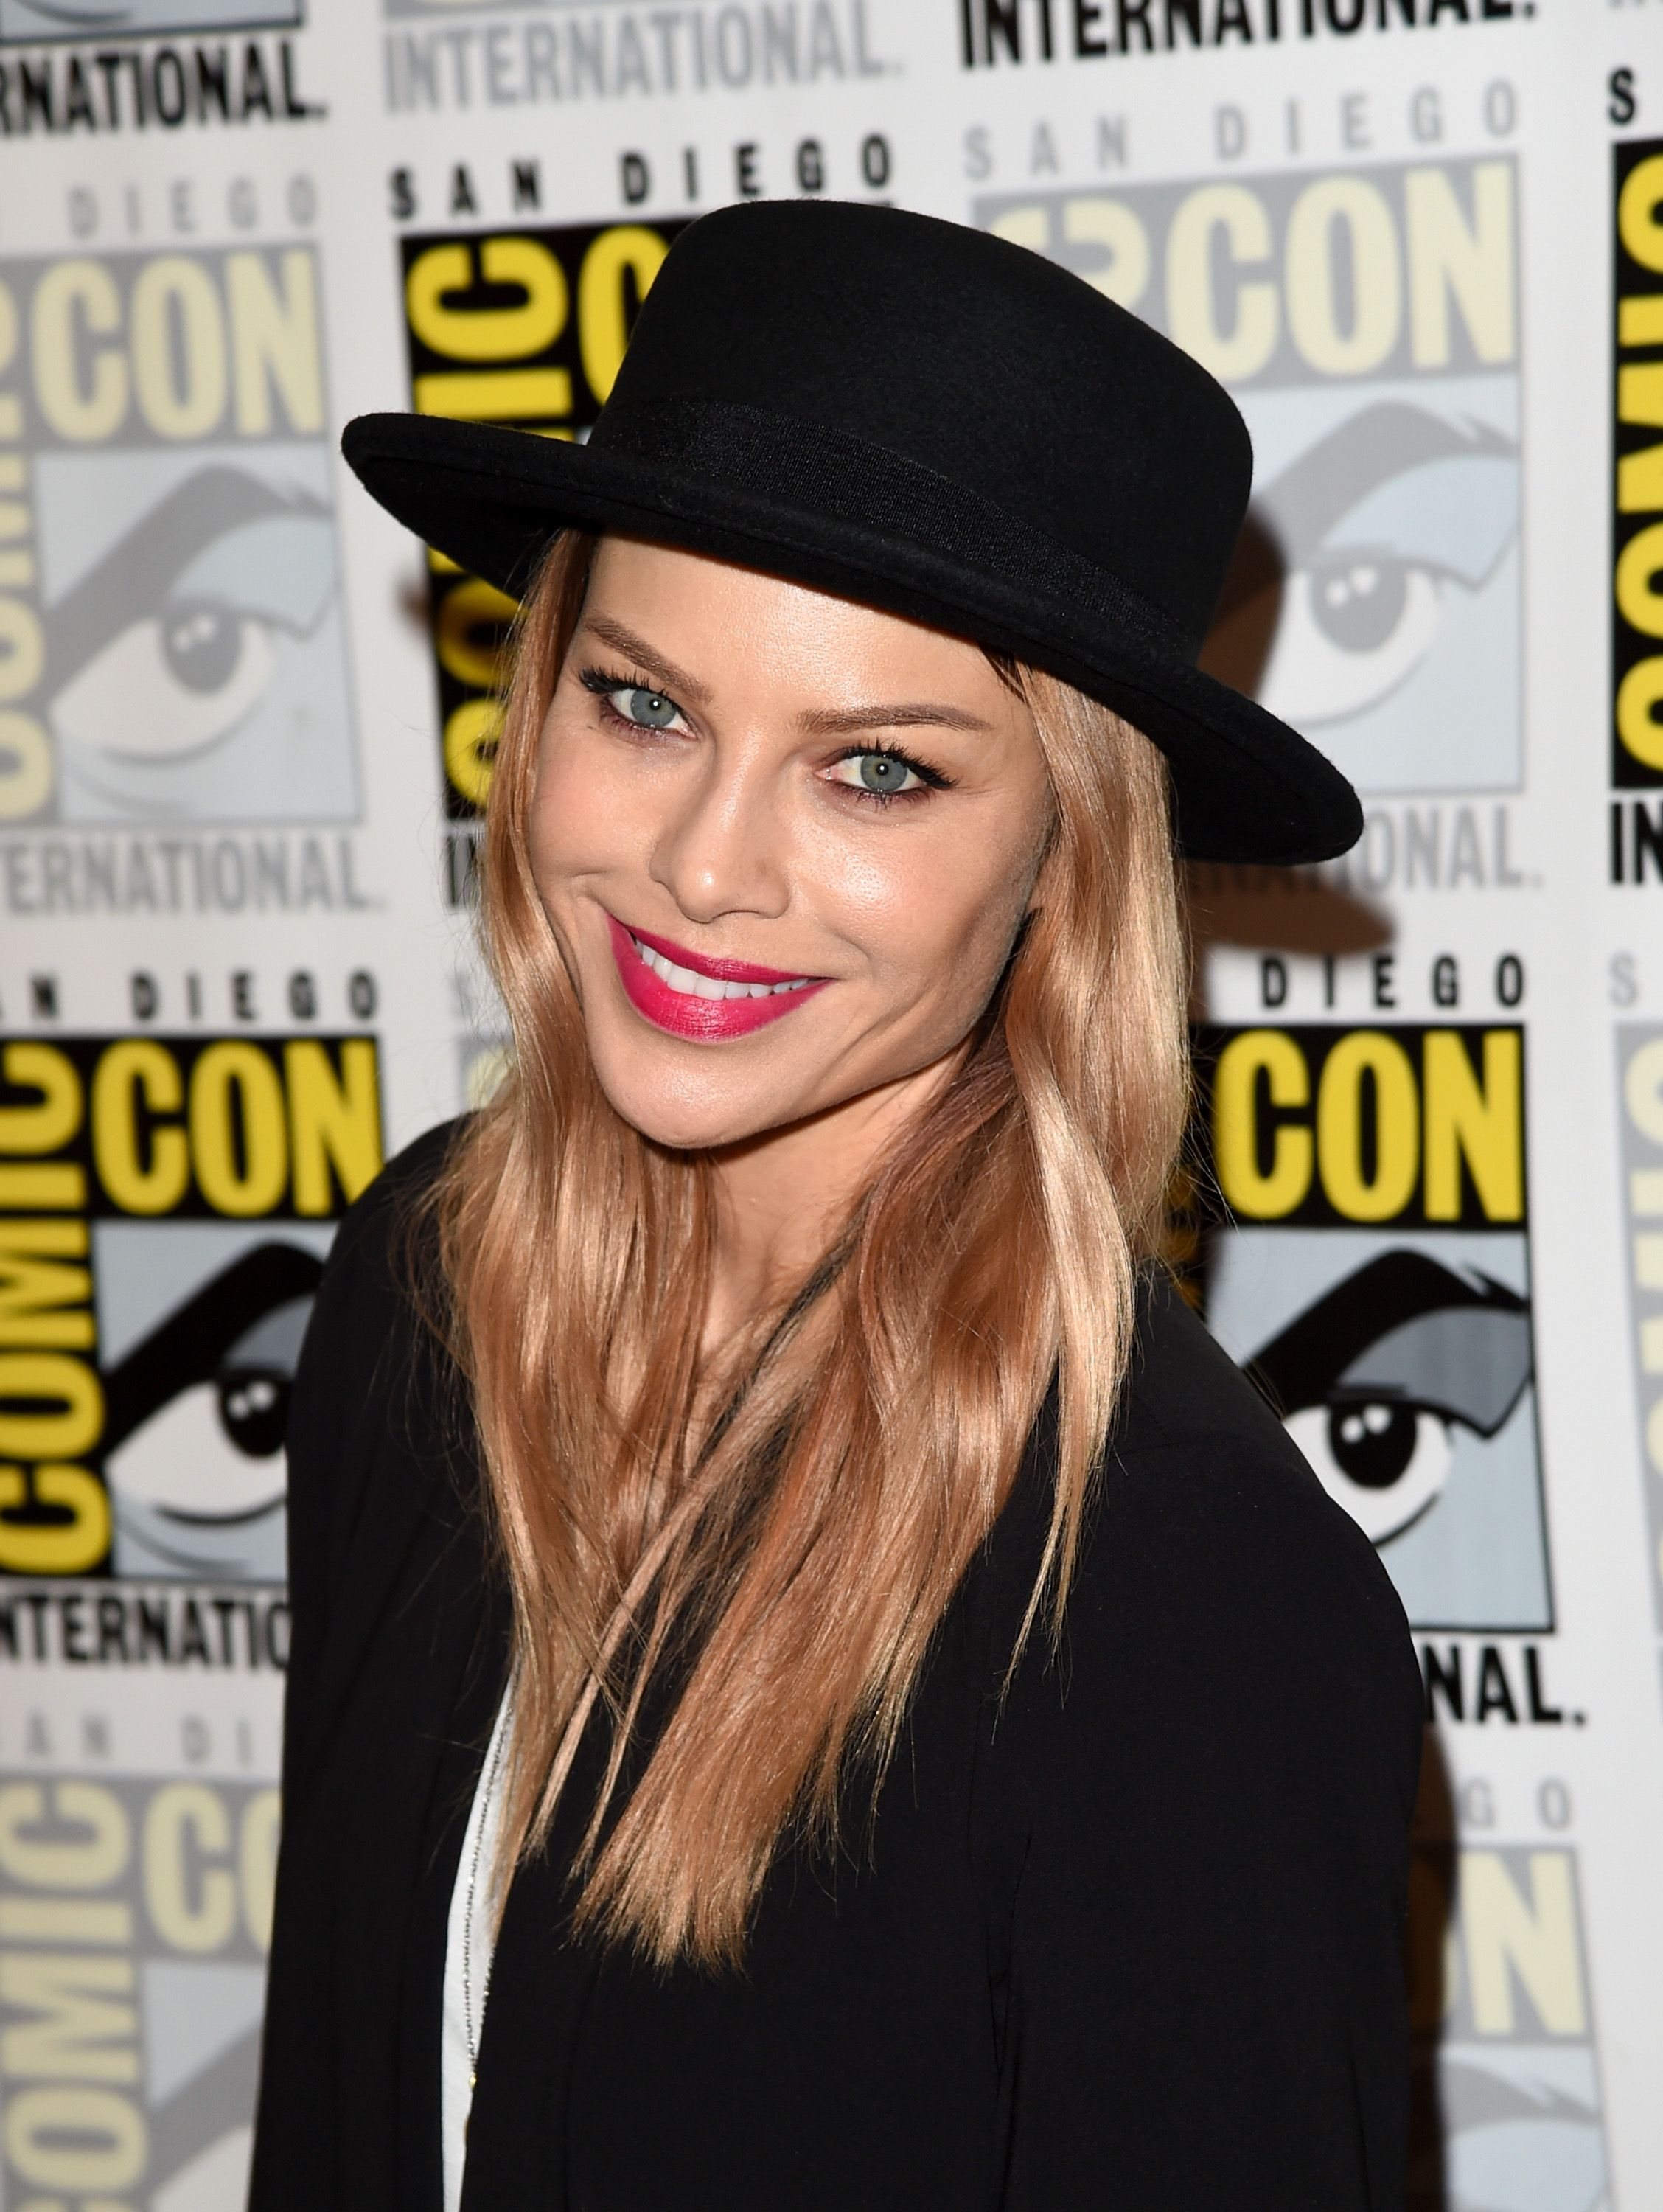 Lauren German likes working with Tom Ellis / Getty Images